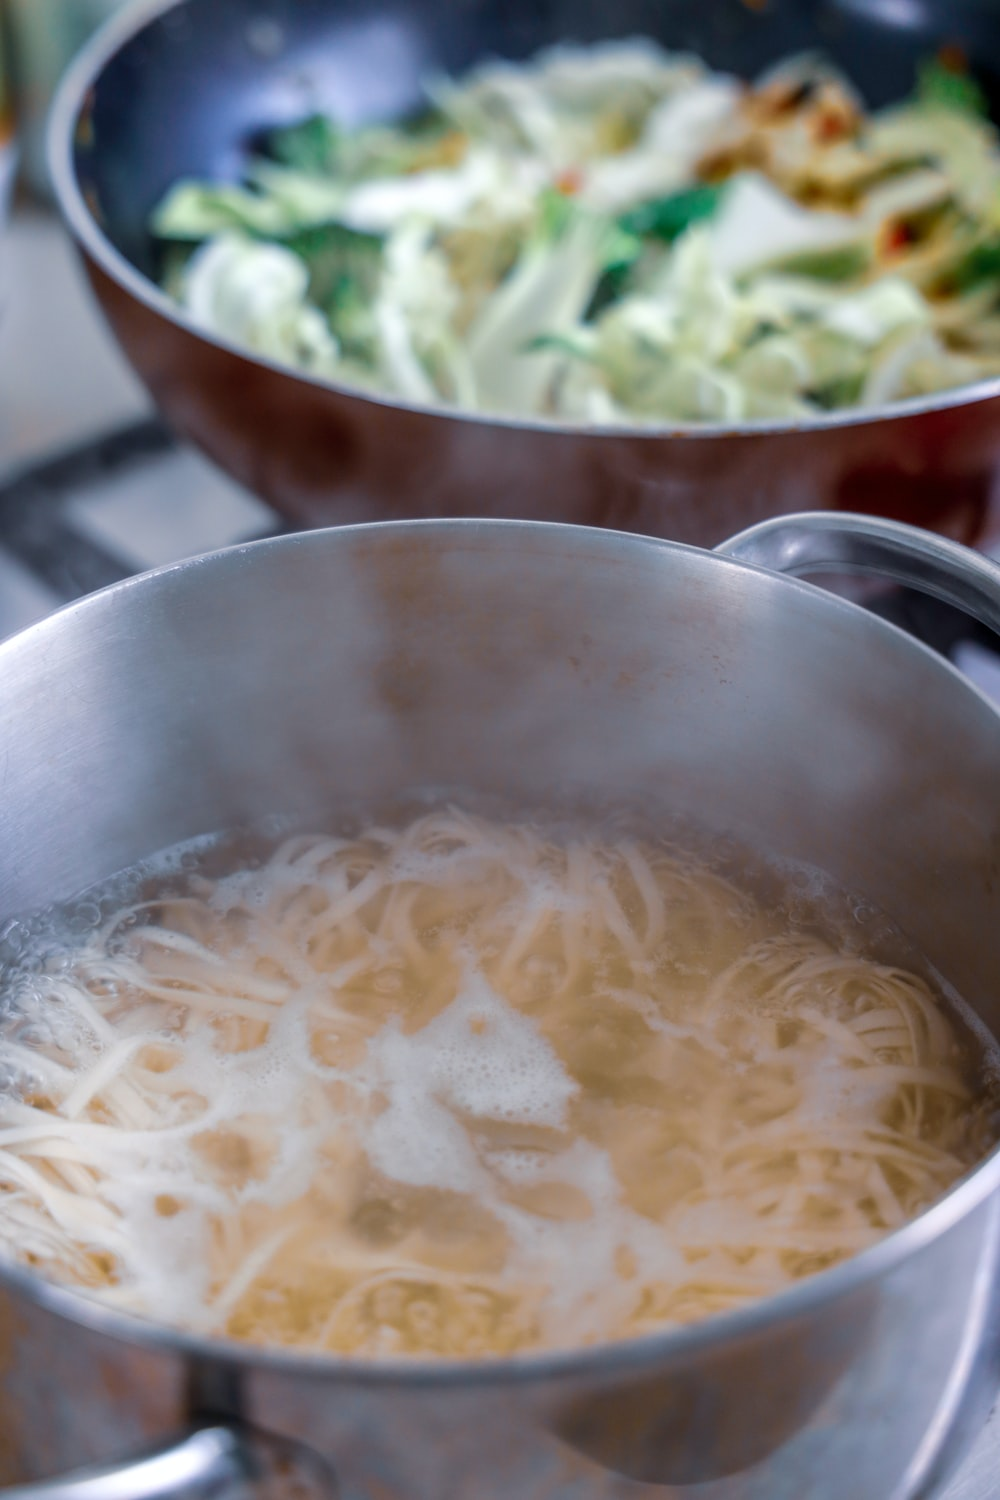 white noodles in stainless steel bowl